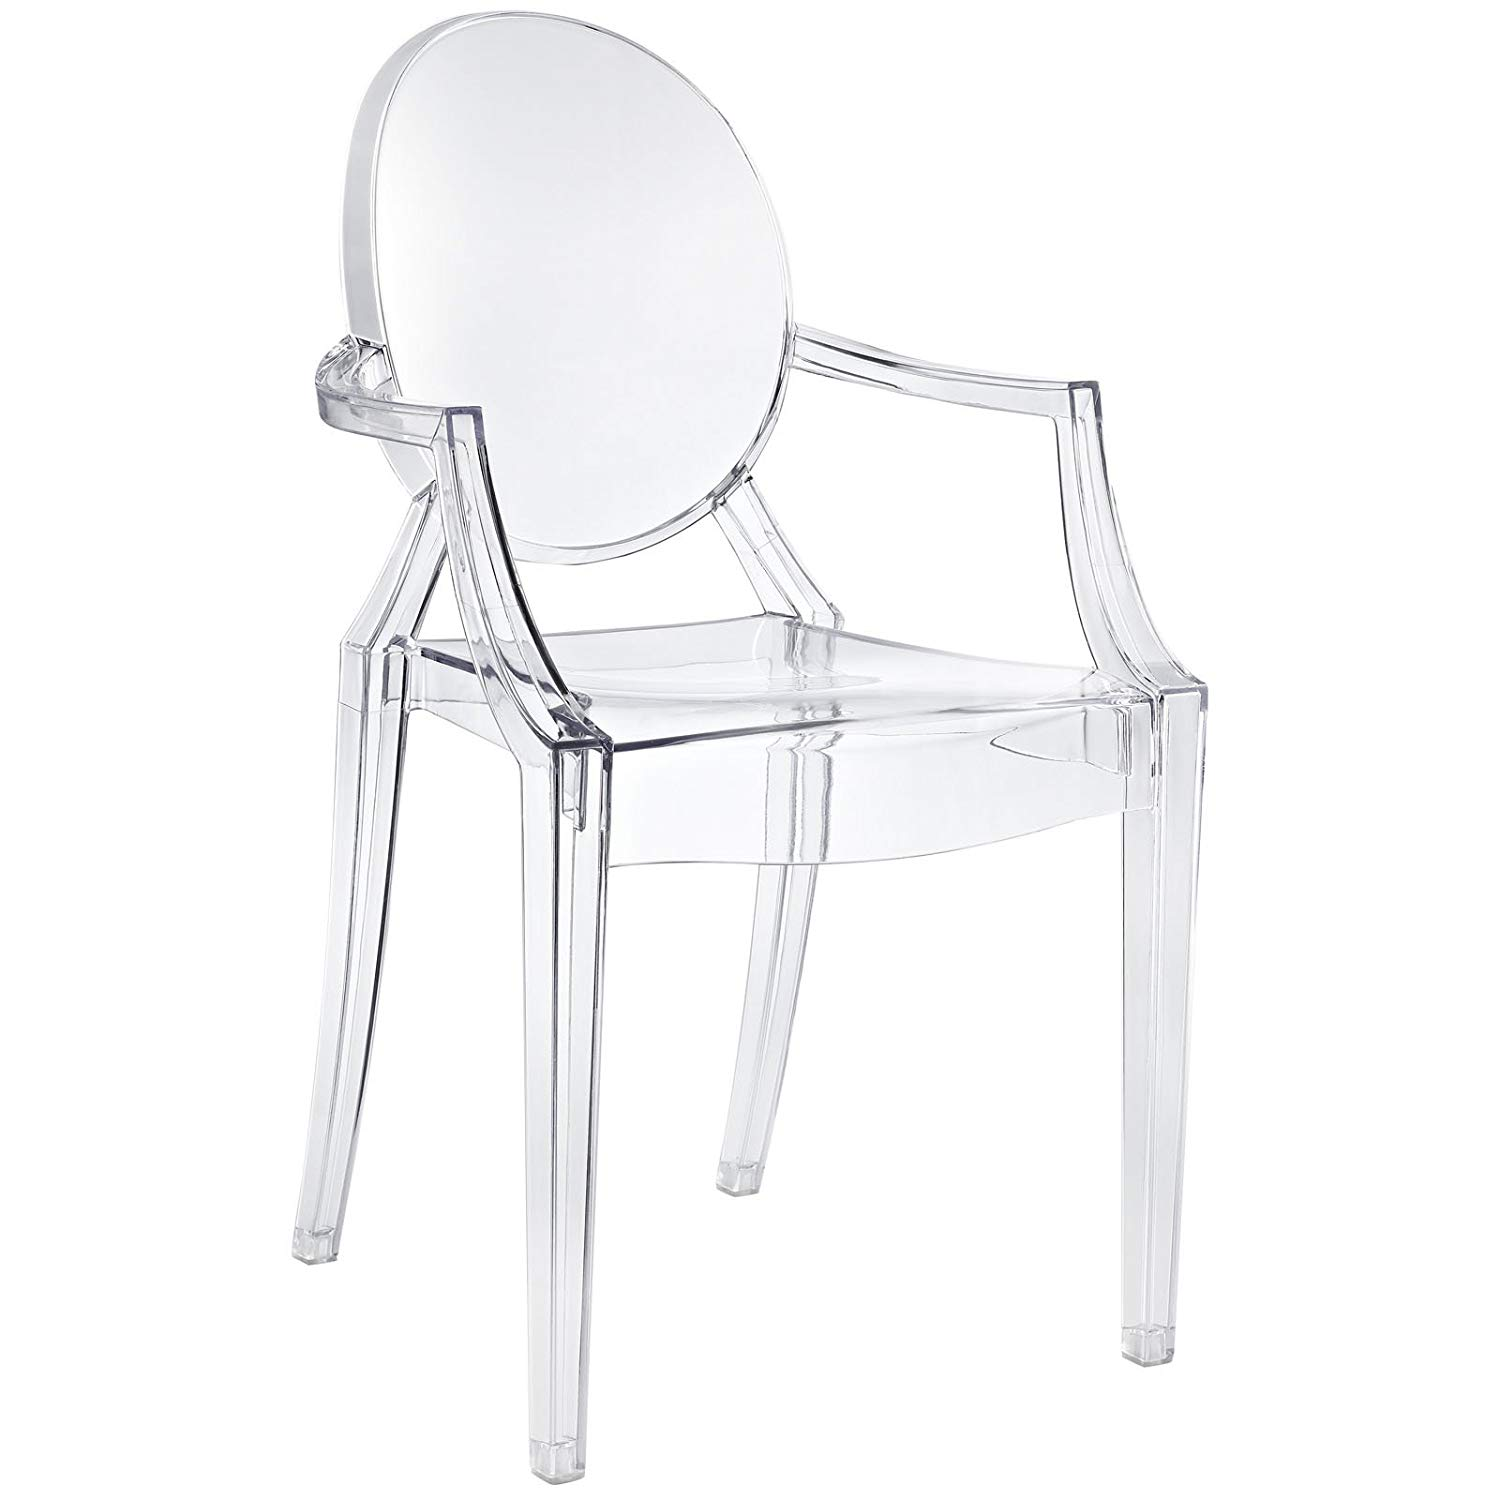 ghost chairs amazon.com - modway casper modern acrylic dining armchair in clear, 1 chair GVUMTBI